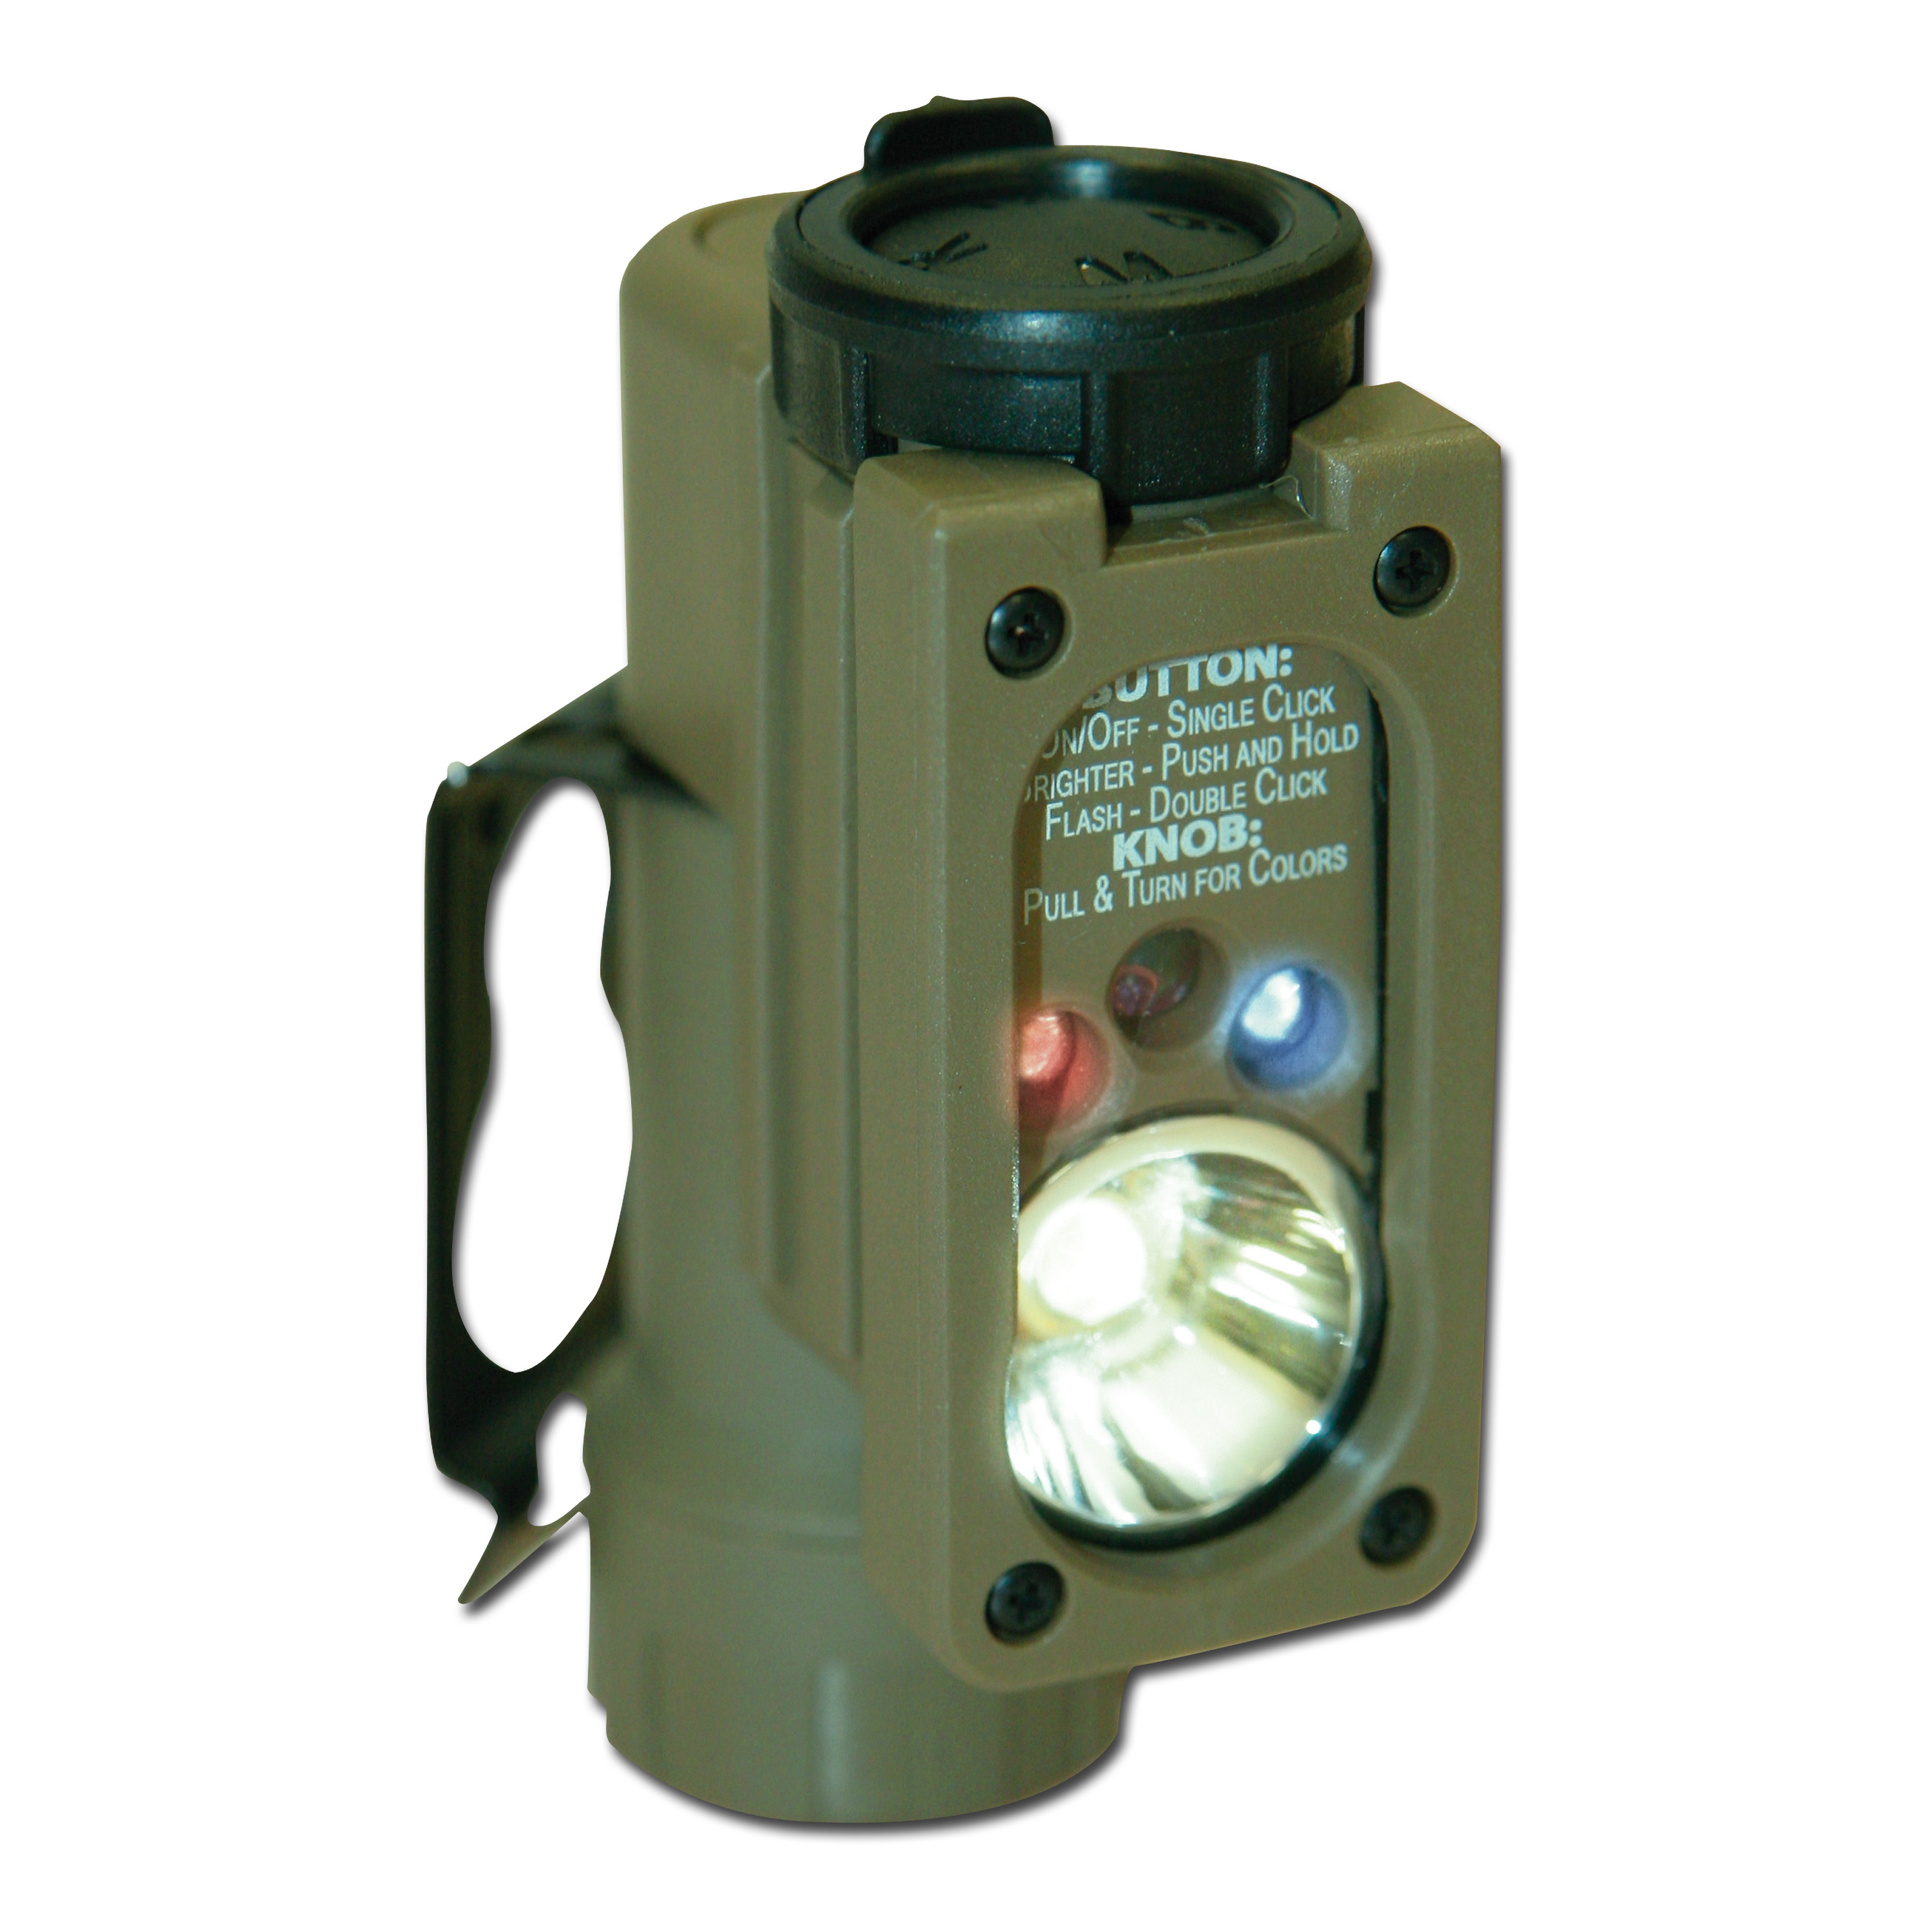 Lamp Streamlight Sidewinder Compact olive